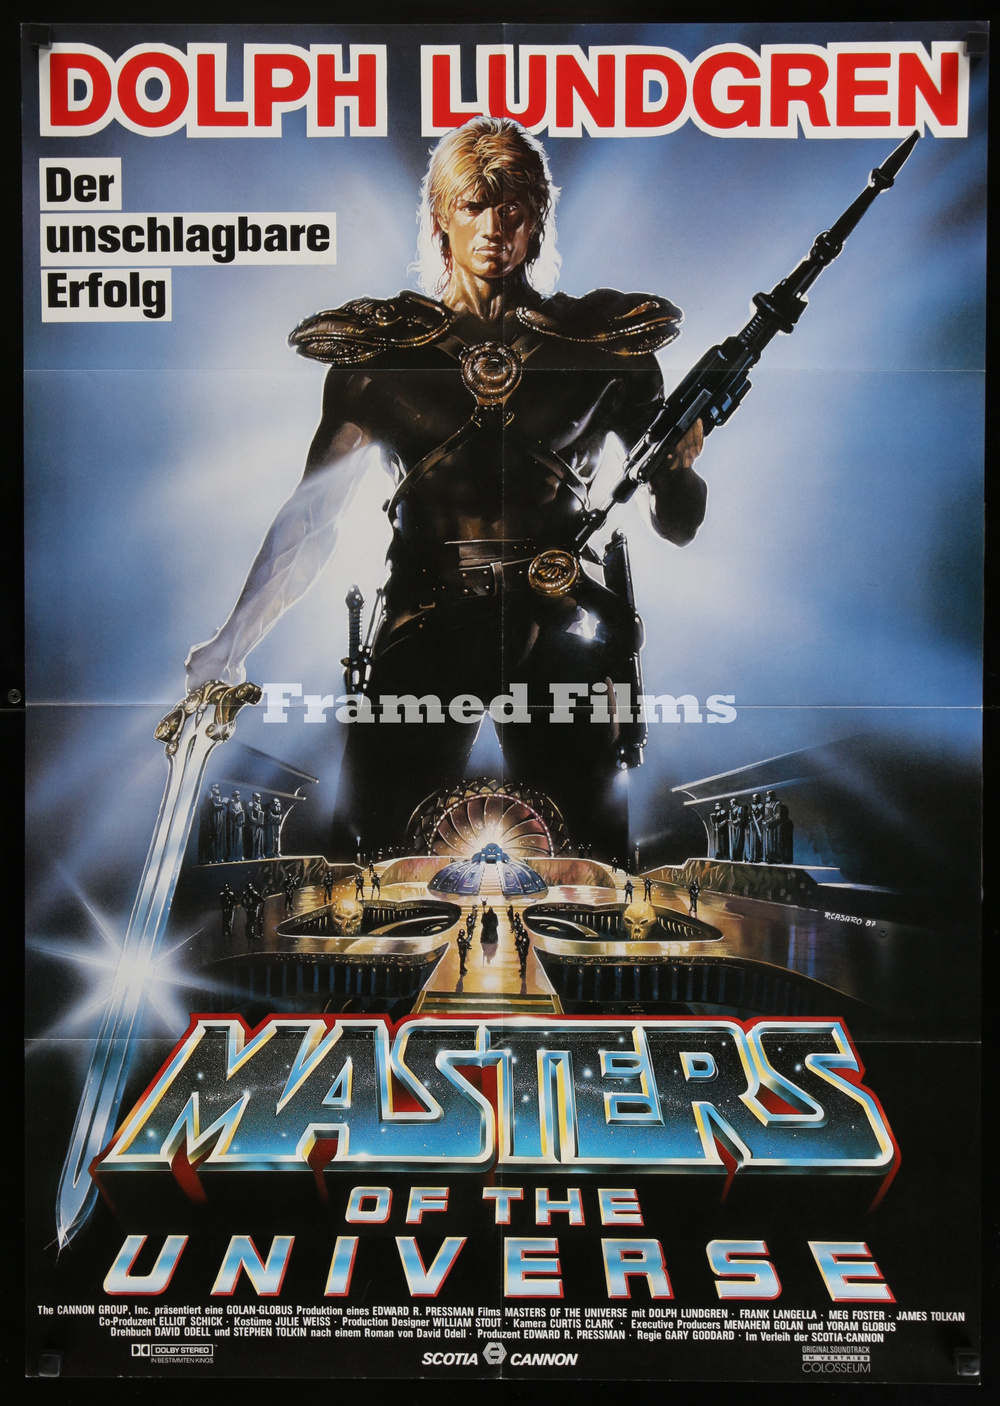 german_a1_masters_of_the_universe_SD00055_C.jpg